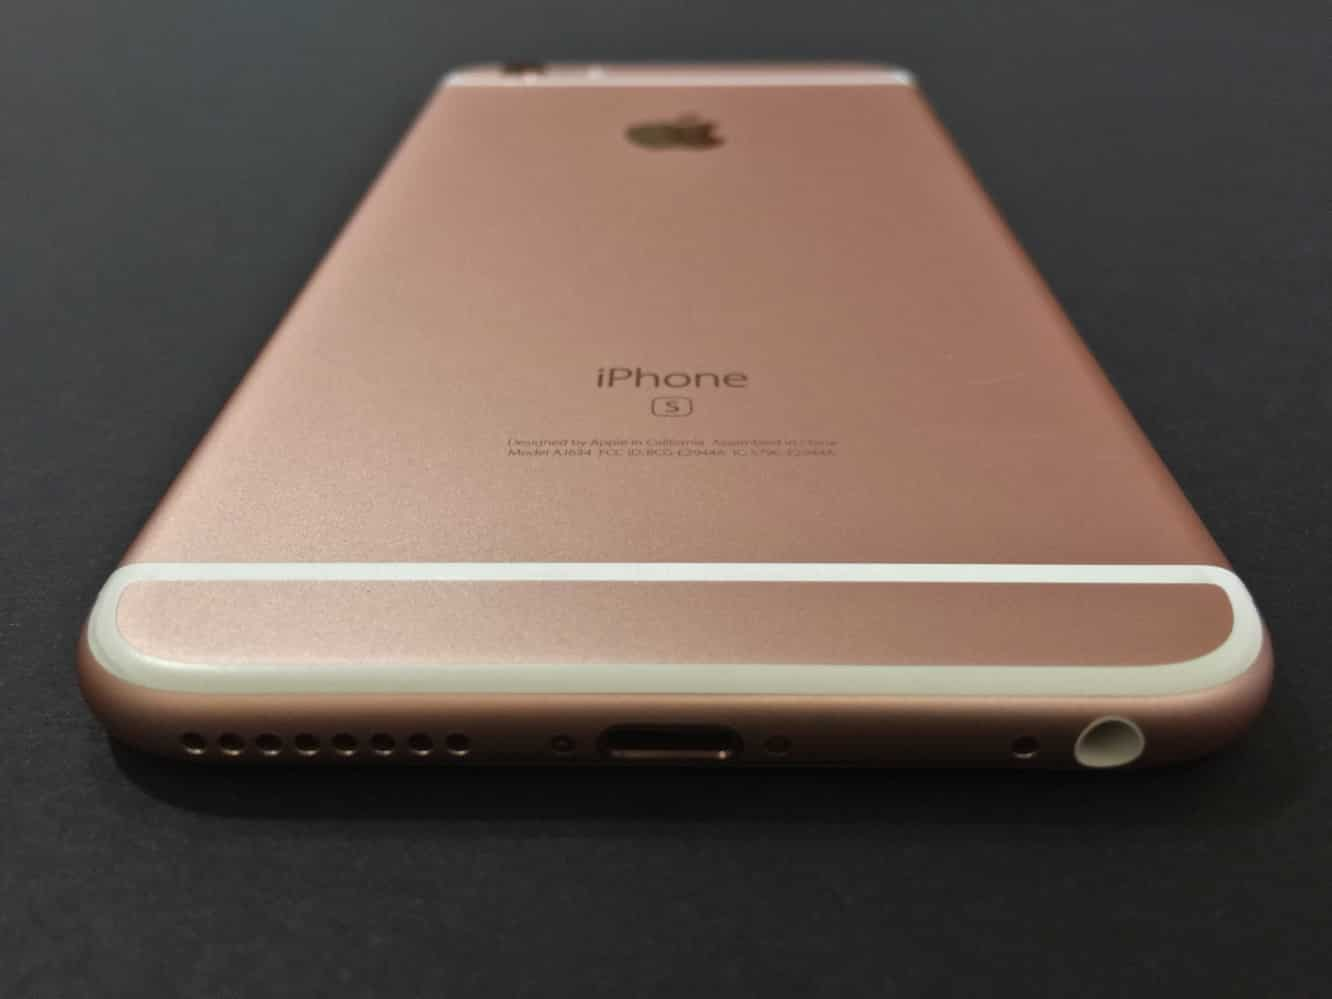 WSJ: iPhone to see modest changes this year, eliminate headphone jack